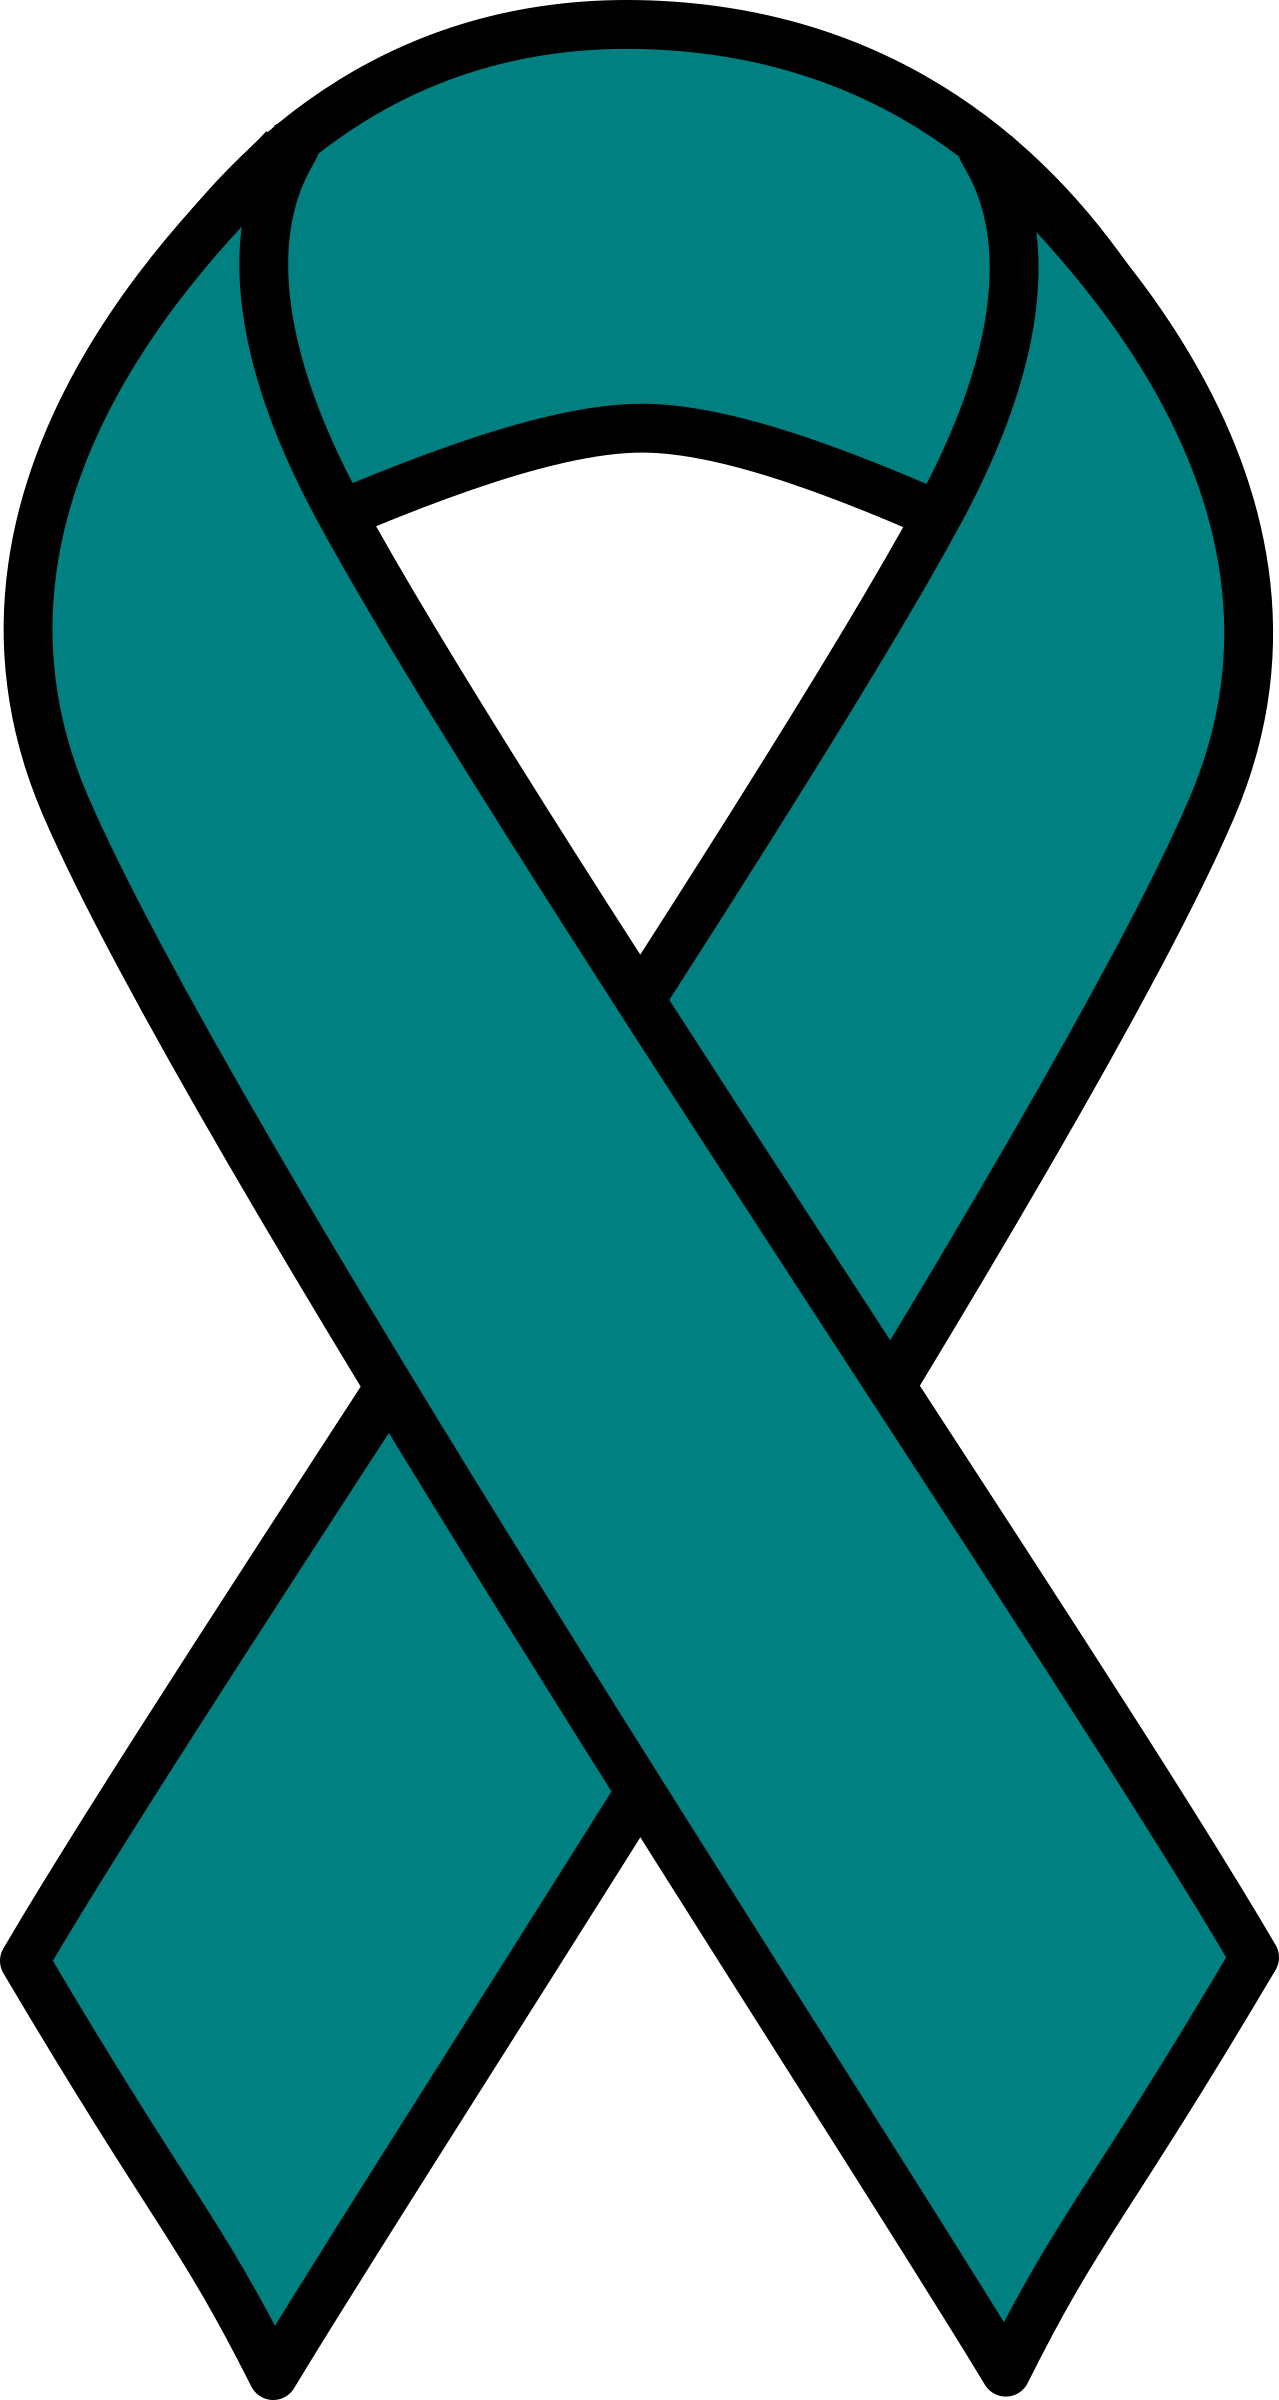 Teal Ribbon Clipart - Clipart Suggest